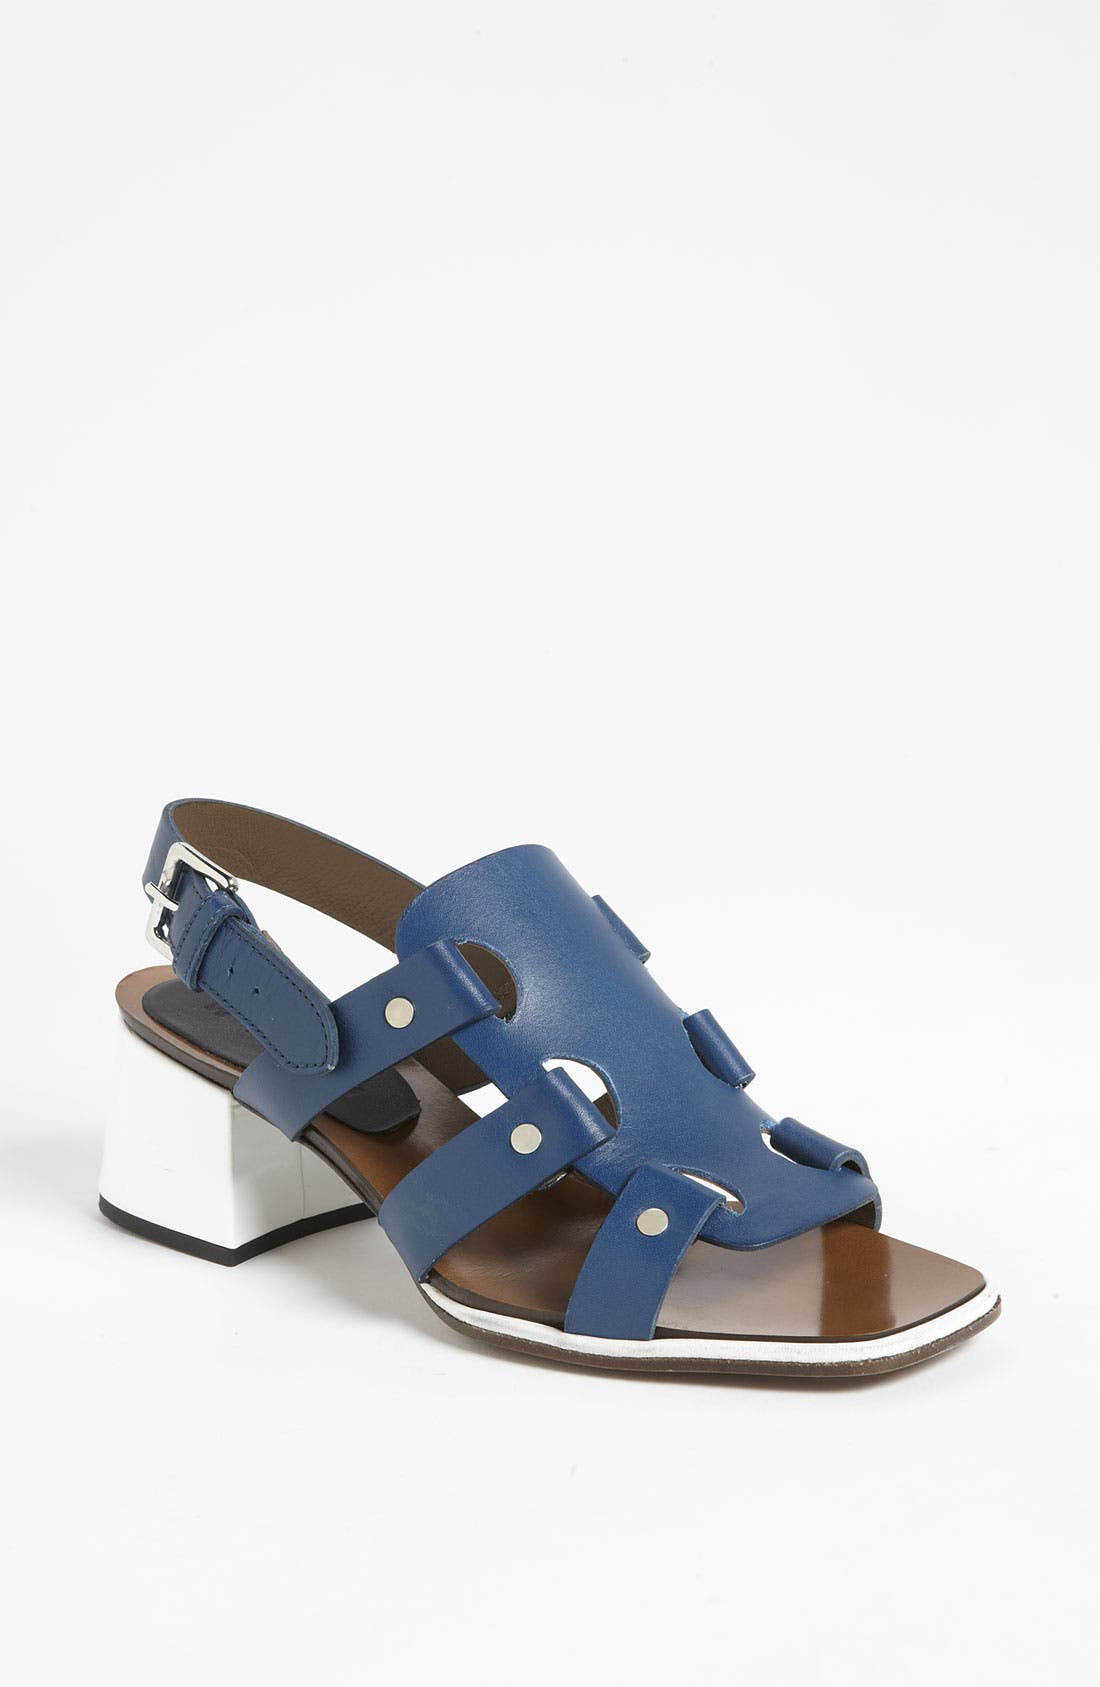 Alternate Image 1 Selected - Marni Block Heel Sandal